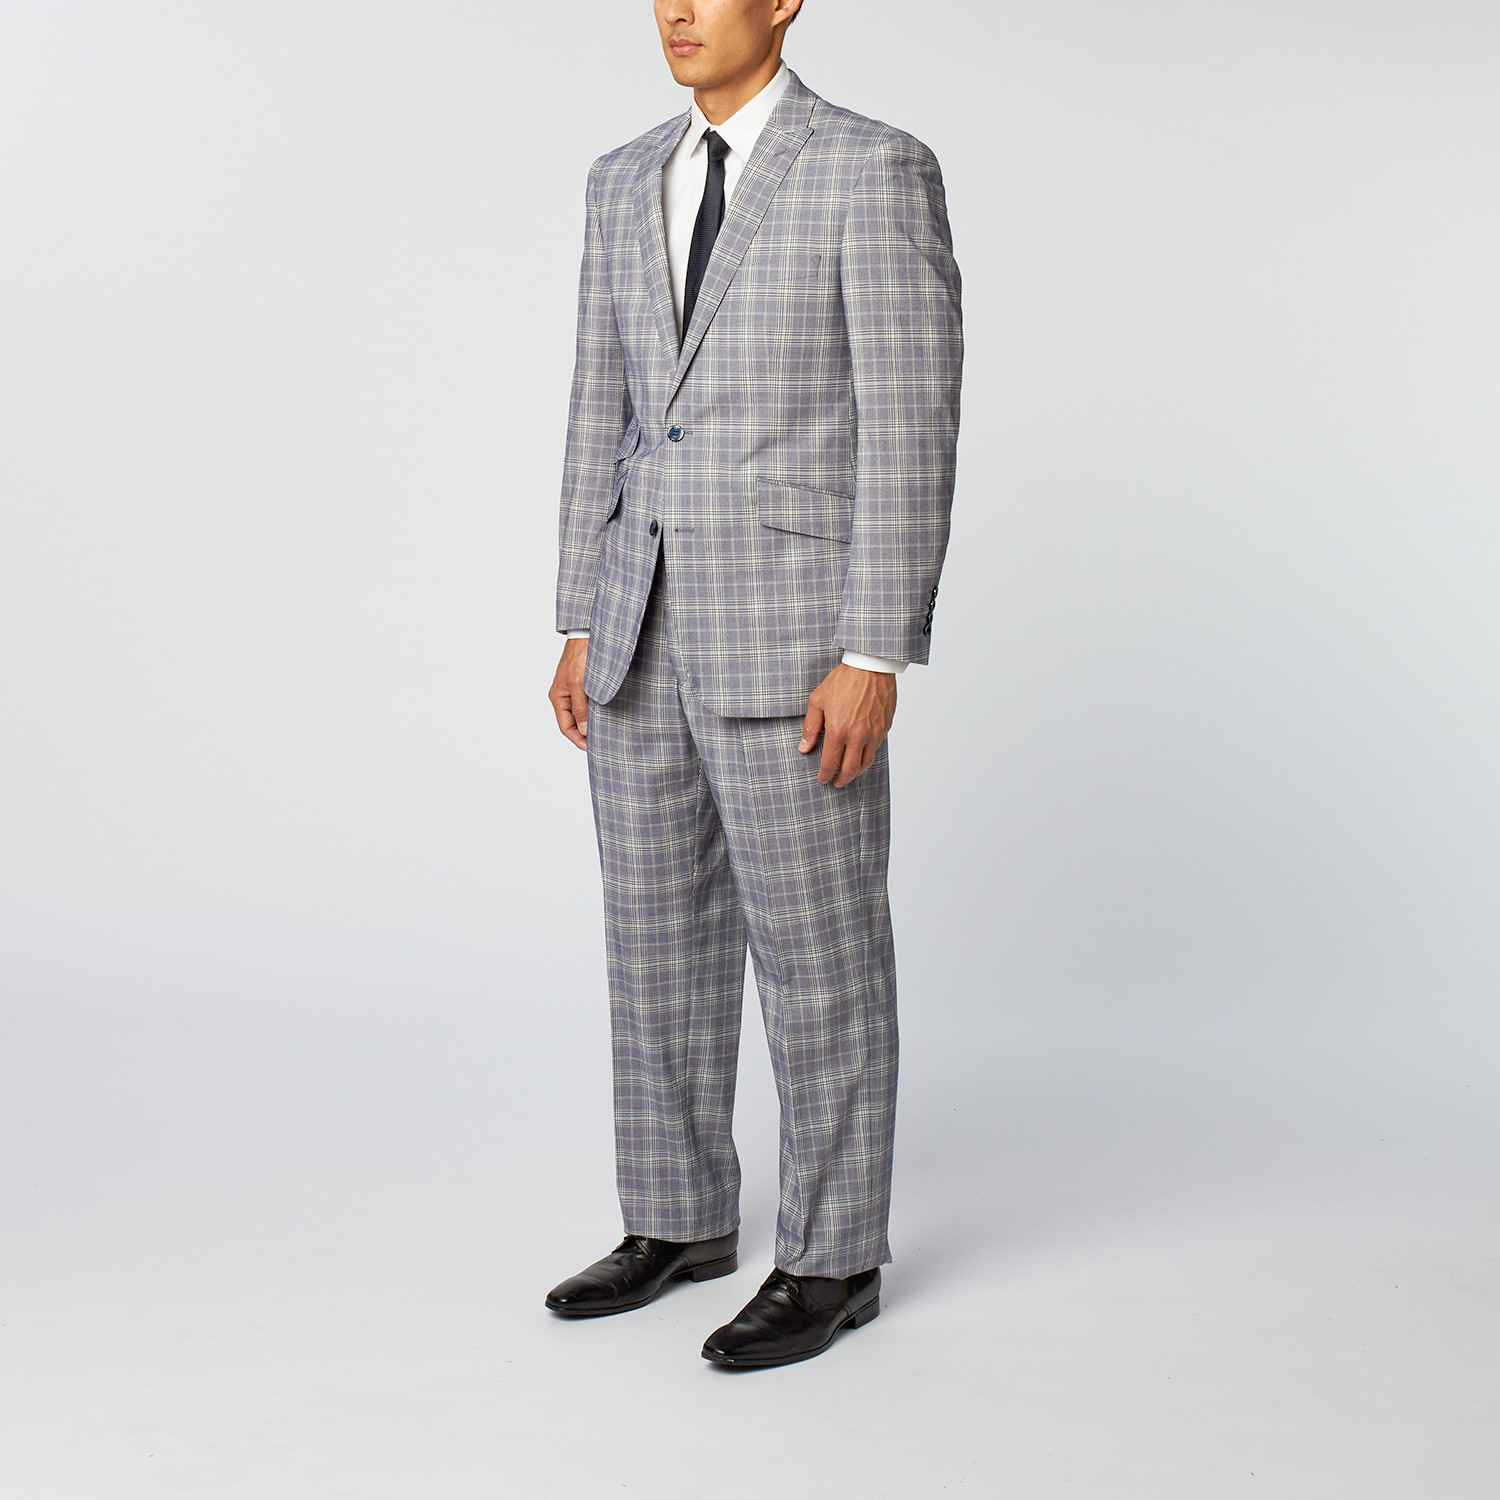 440v.cf offers mens dress suits including two button style suit, four button suits, double breasted suits, wool suits, jackets, pants, tuxedo suits, mens shoes, dress shirts, blazer for united states, canada from germany and italy.